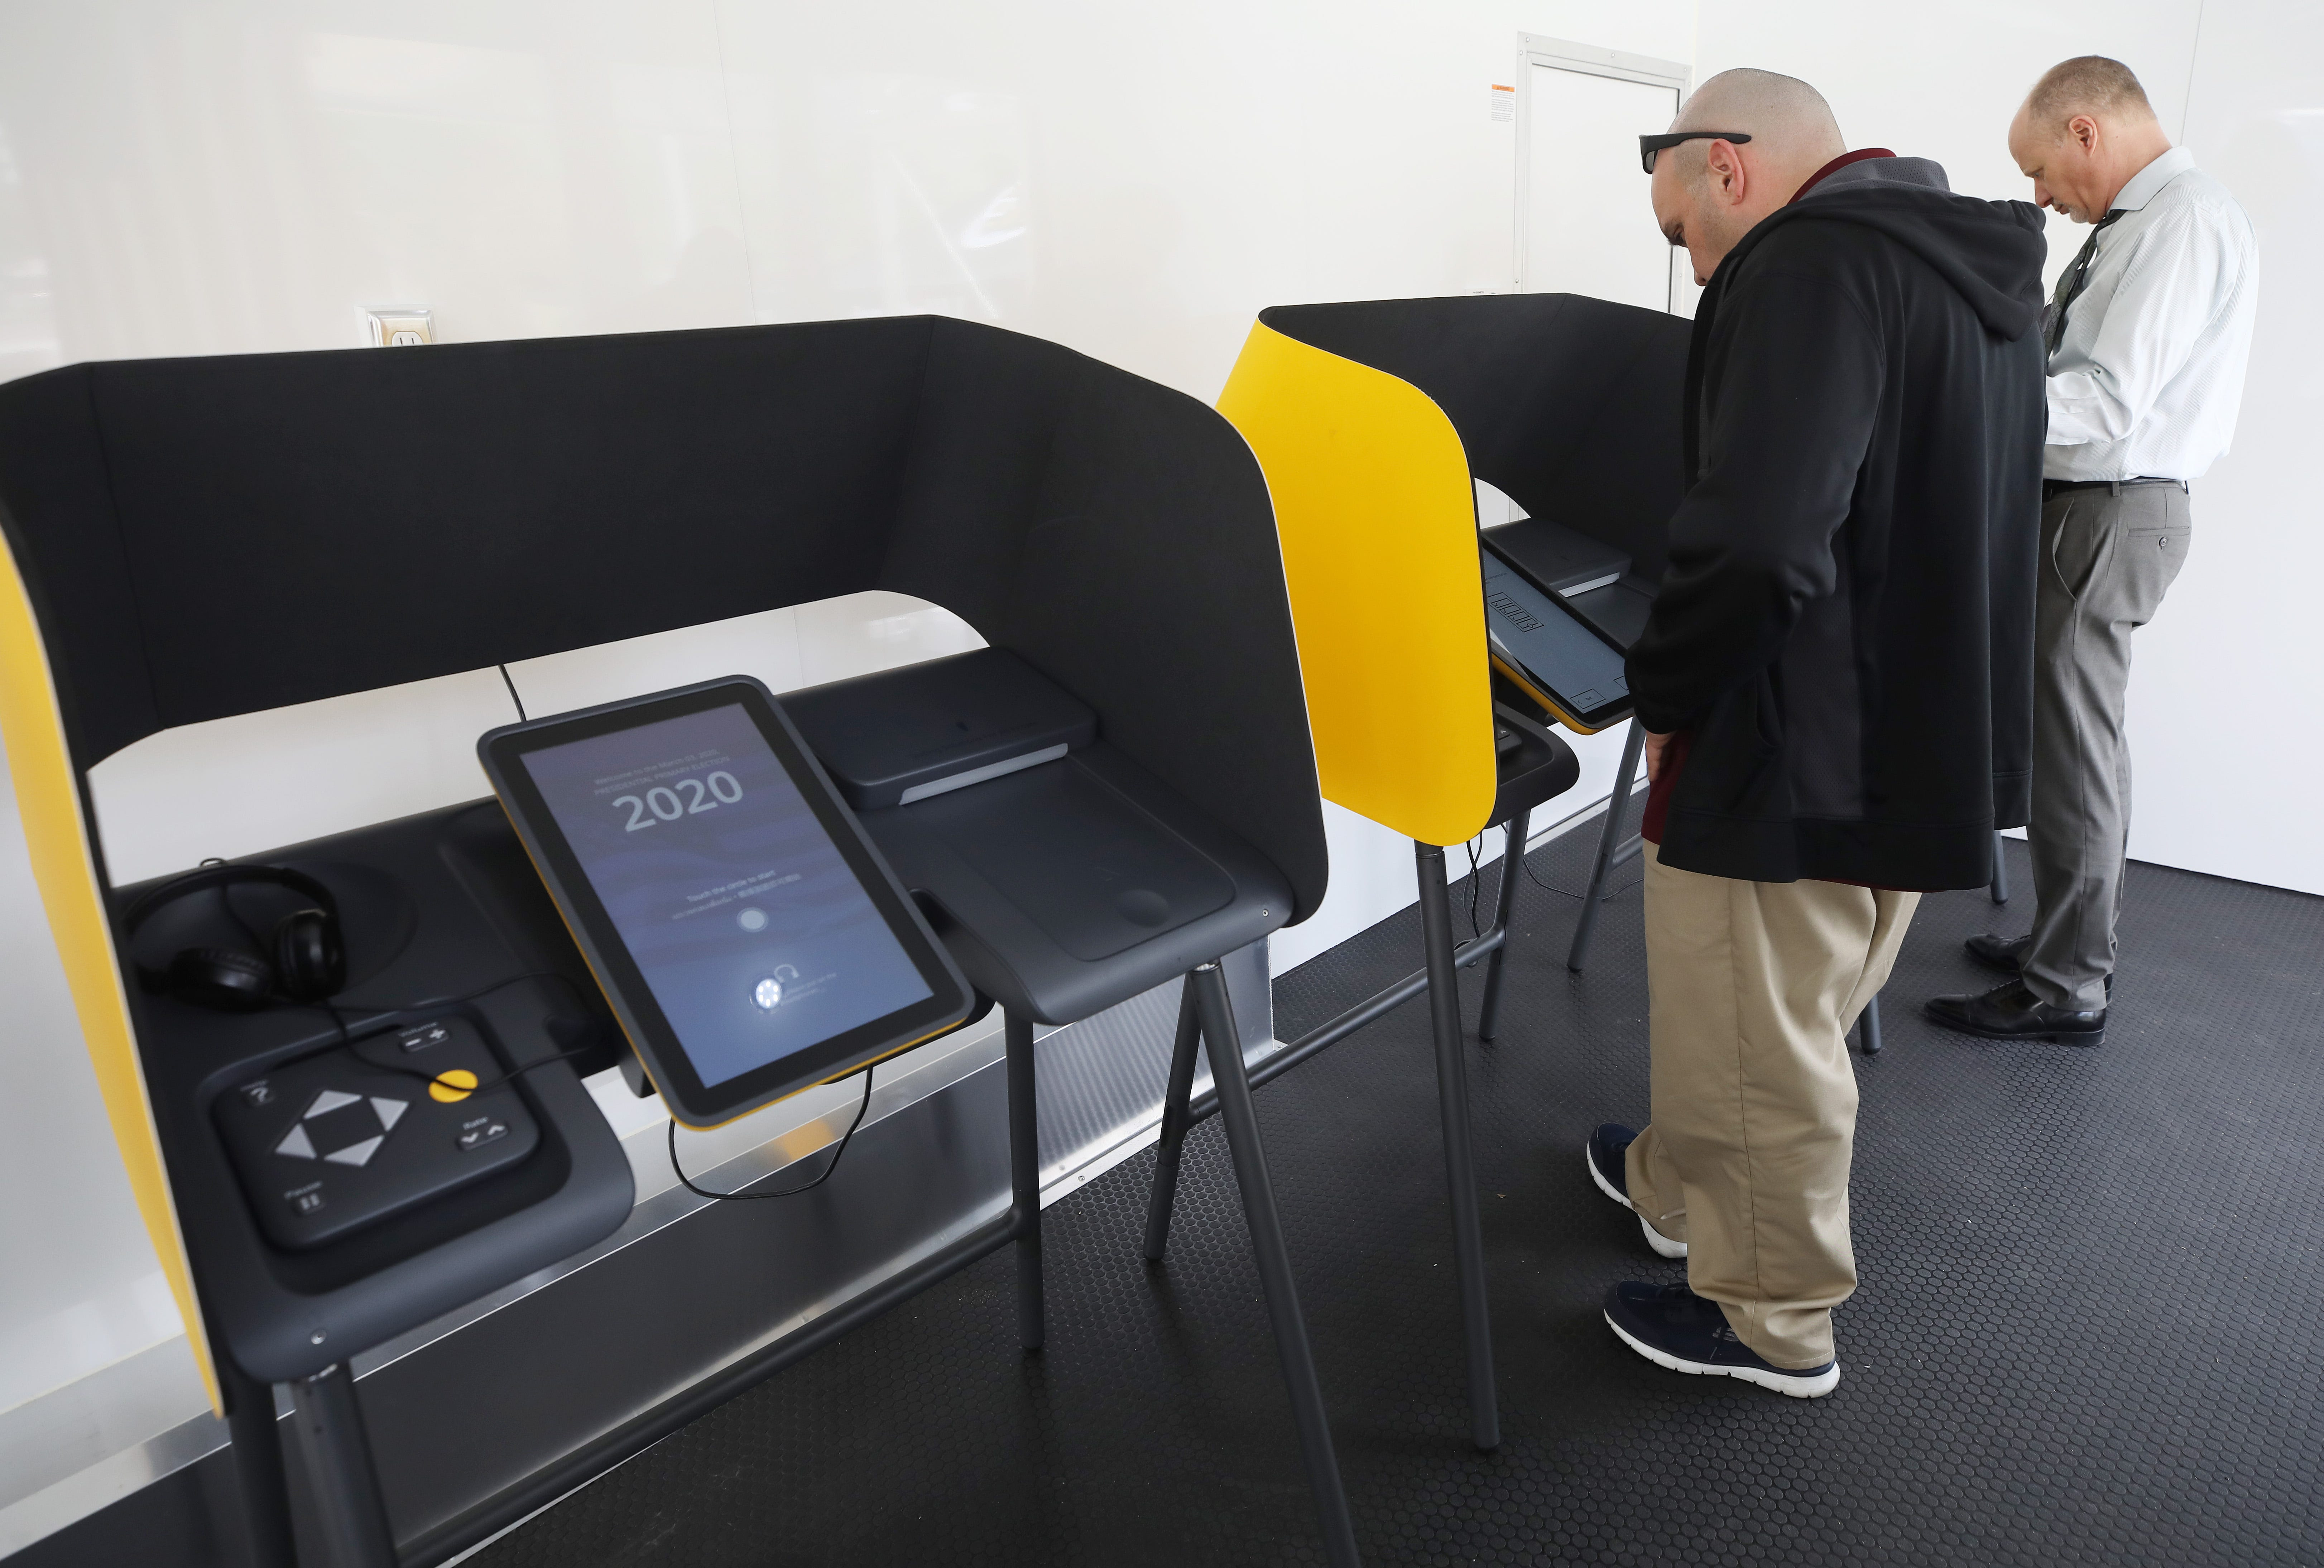 Voters prepare their ballots in voting booths during early voting for the California presidential primary election at a new L.A. County Mobile Vote Center